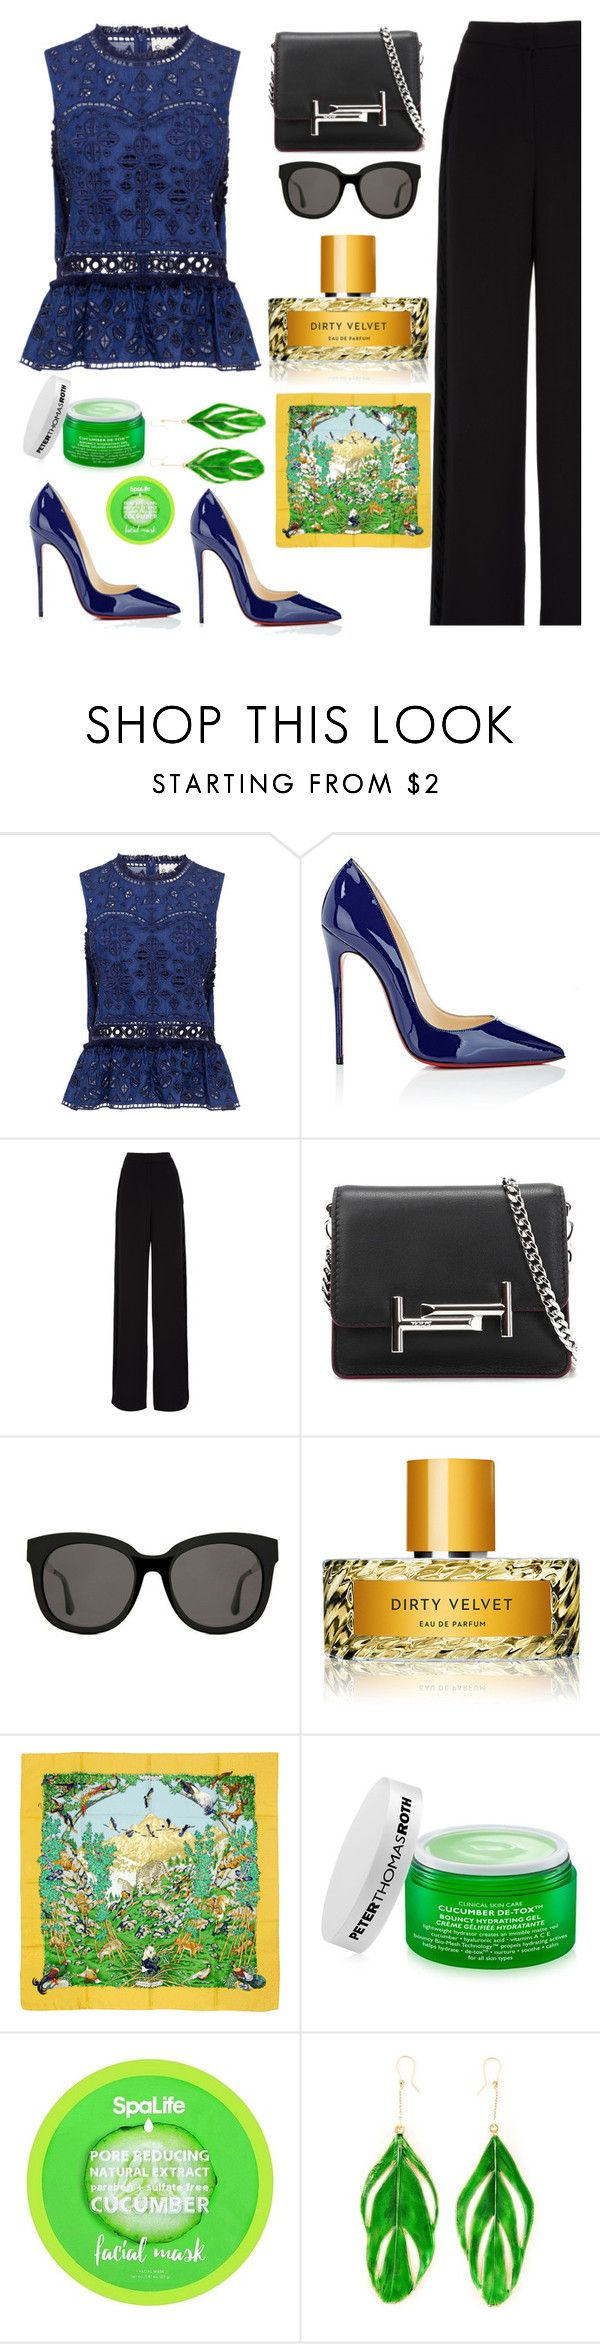 """Dirty Velvet"" by felicitysparks ❤ liked on Polyvore featuring Sea, New York, Christian Louboutin, Rochas, Tod's, Gentle Monster, Vilhelm Parfumerie, Hermès, Peter Thomas Roth and Aurélie Bidermann"